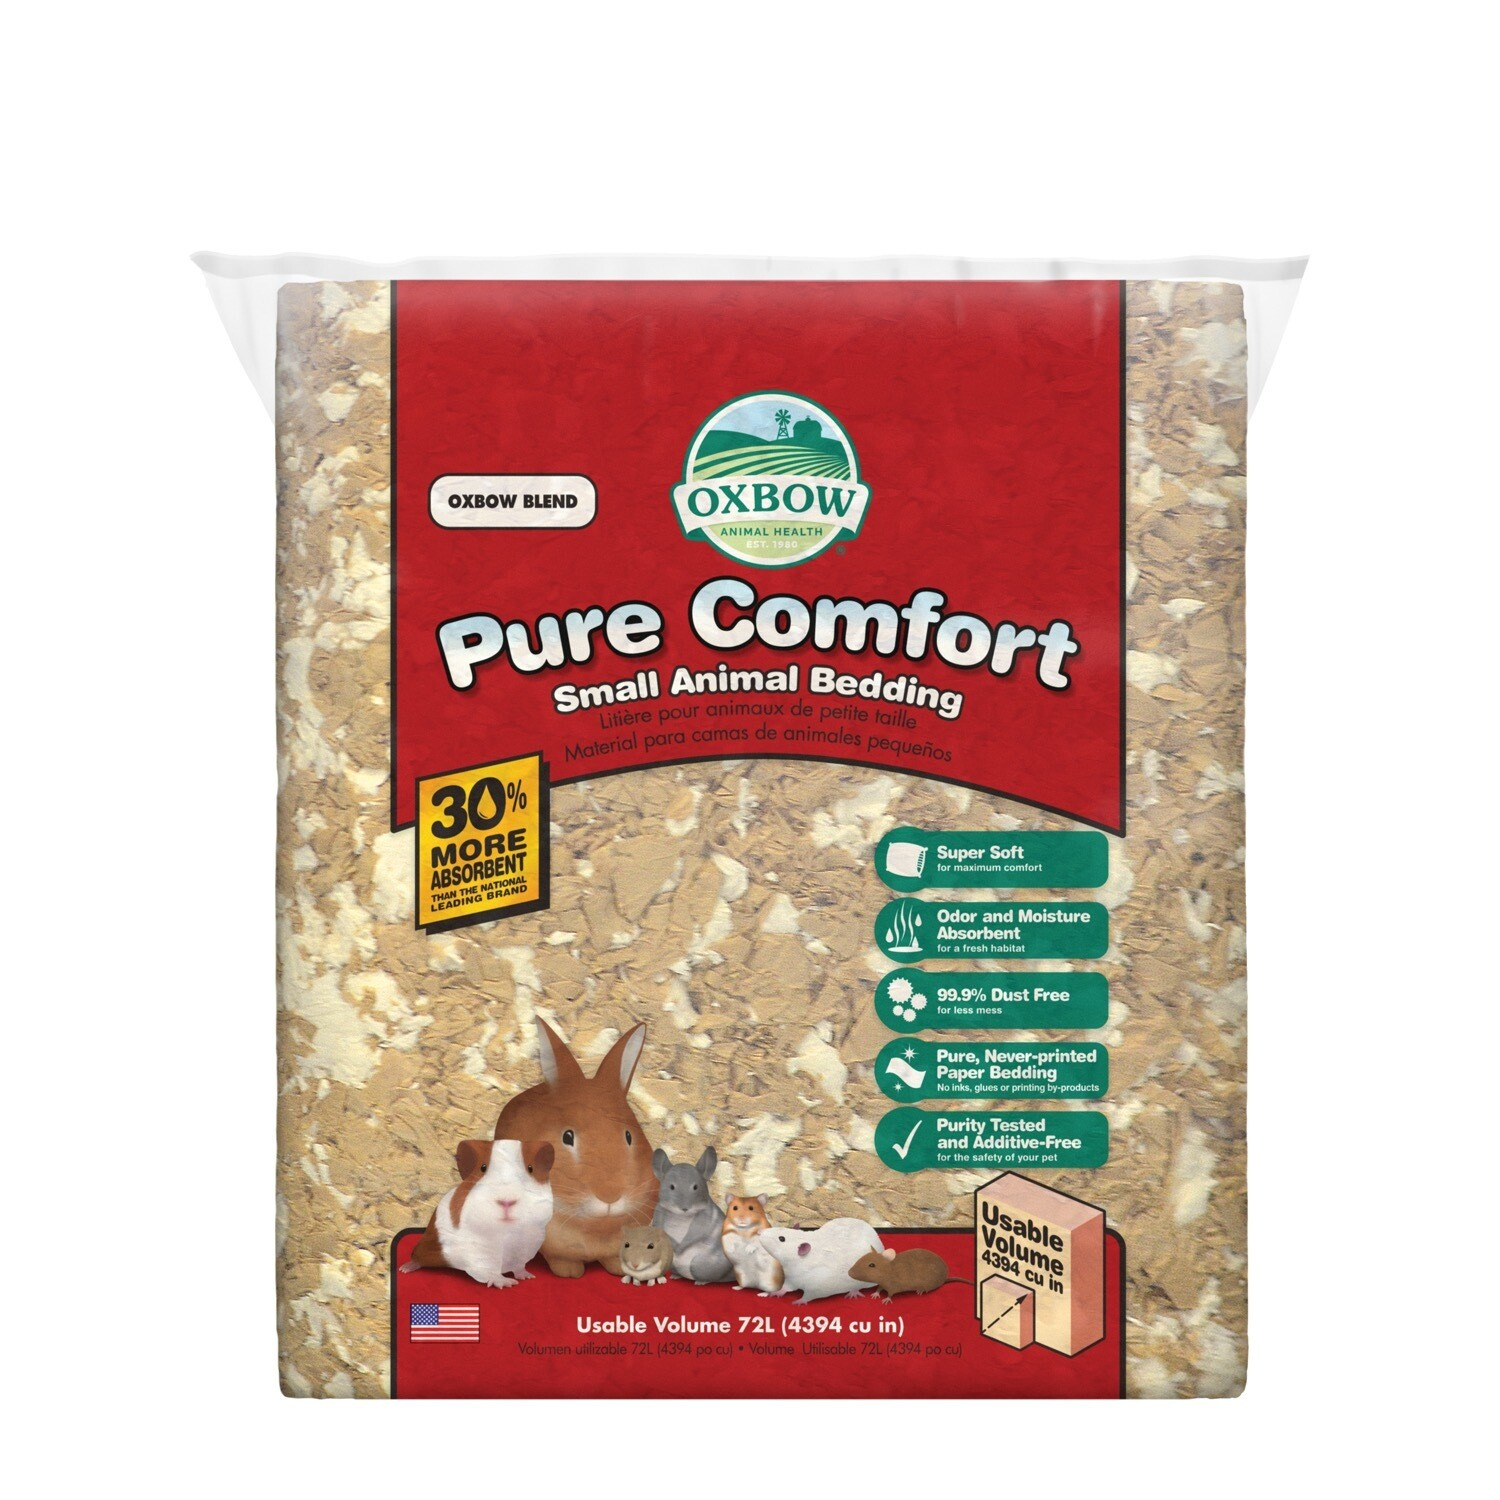 OXBOW PURE COMFORT BEDDING - BLEND 72L